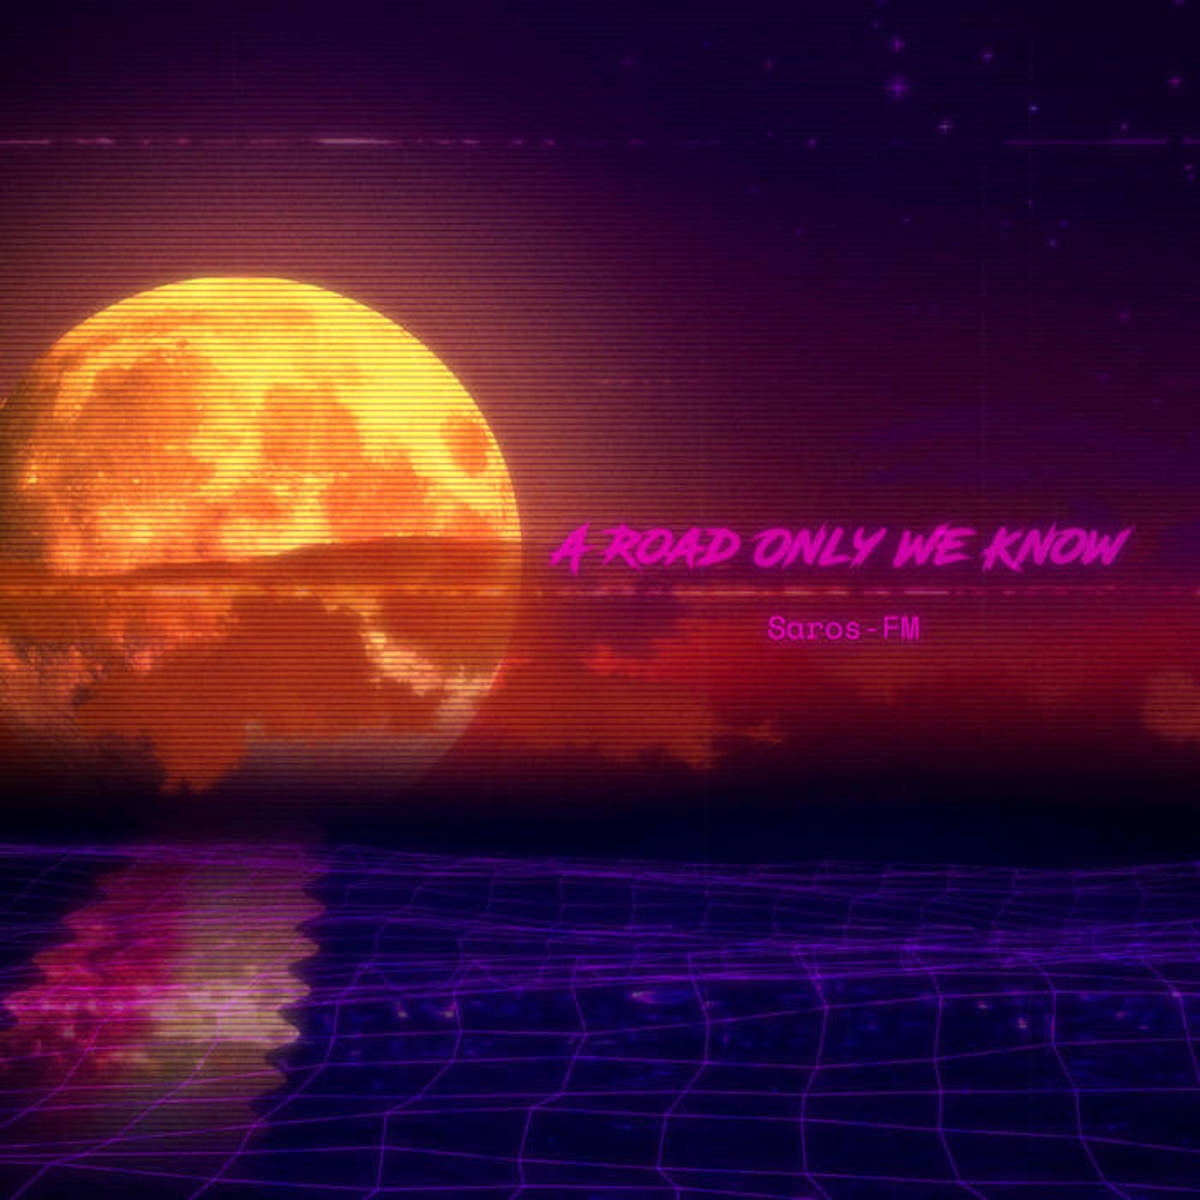 synthwave-ep-review-a-road-only-we-know-by-saros-fm